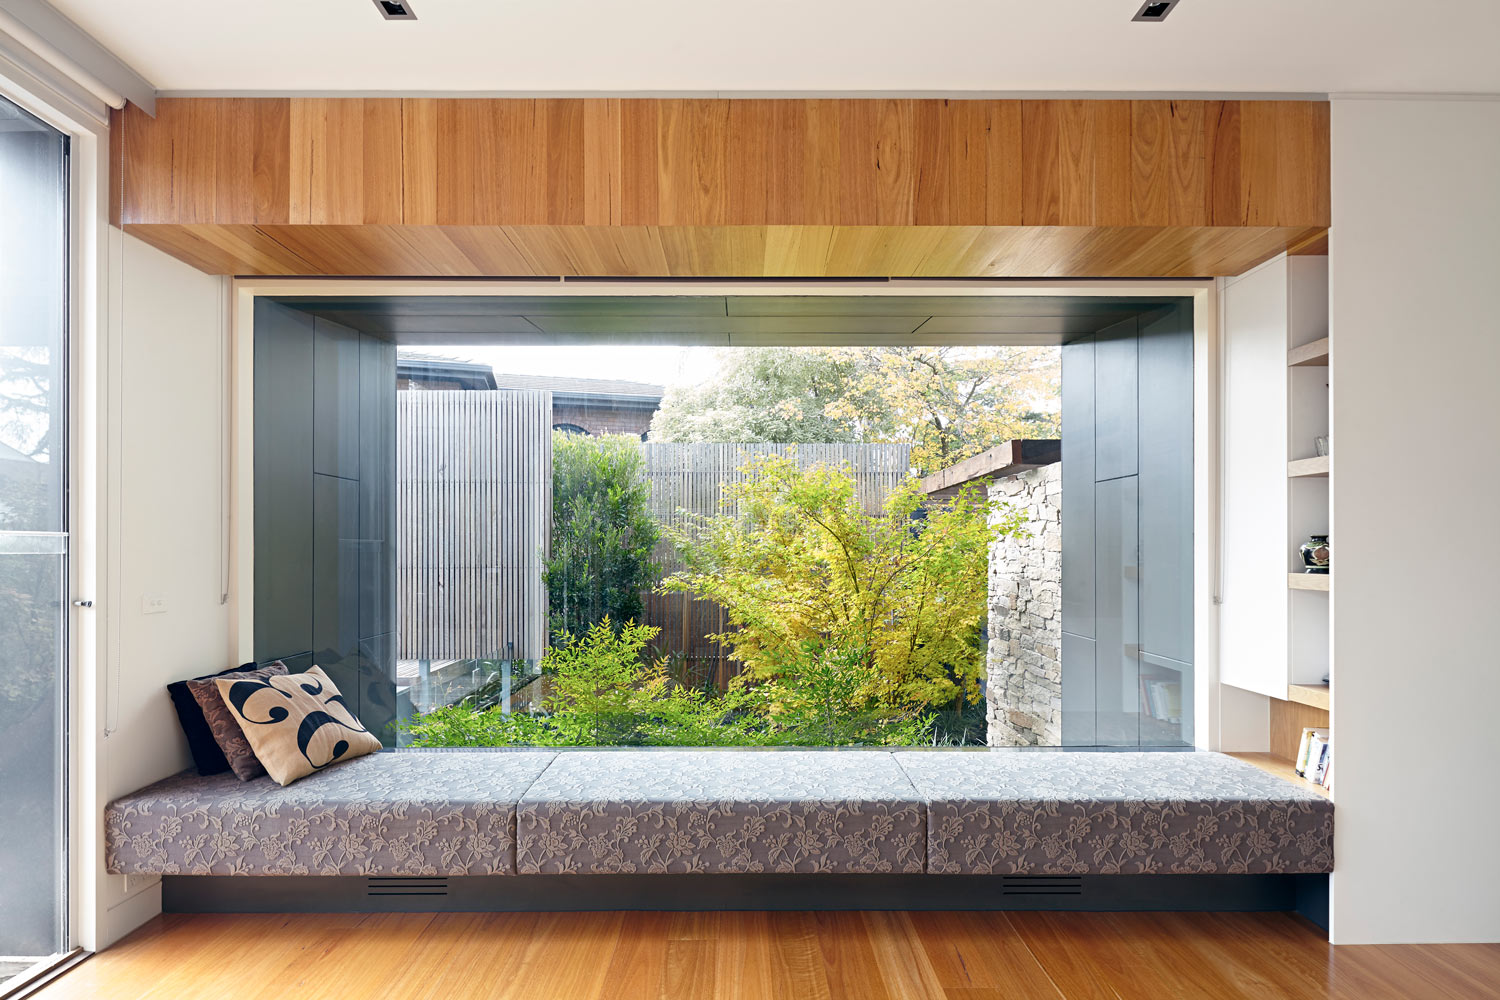 balwyn-house-renovation-by-warc-studio-03.jpg